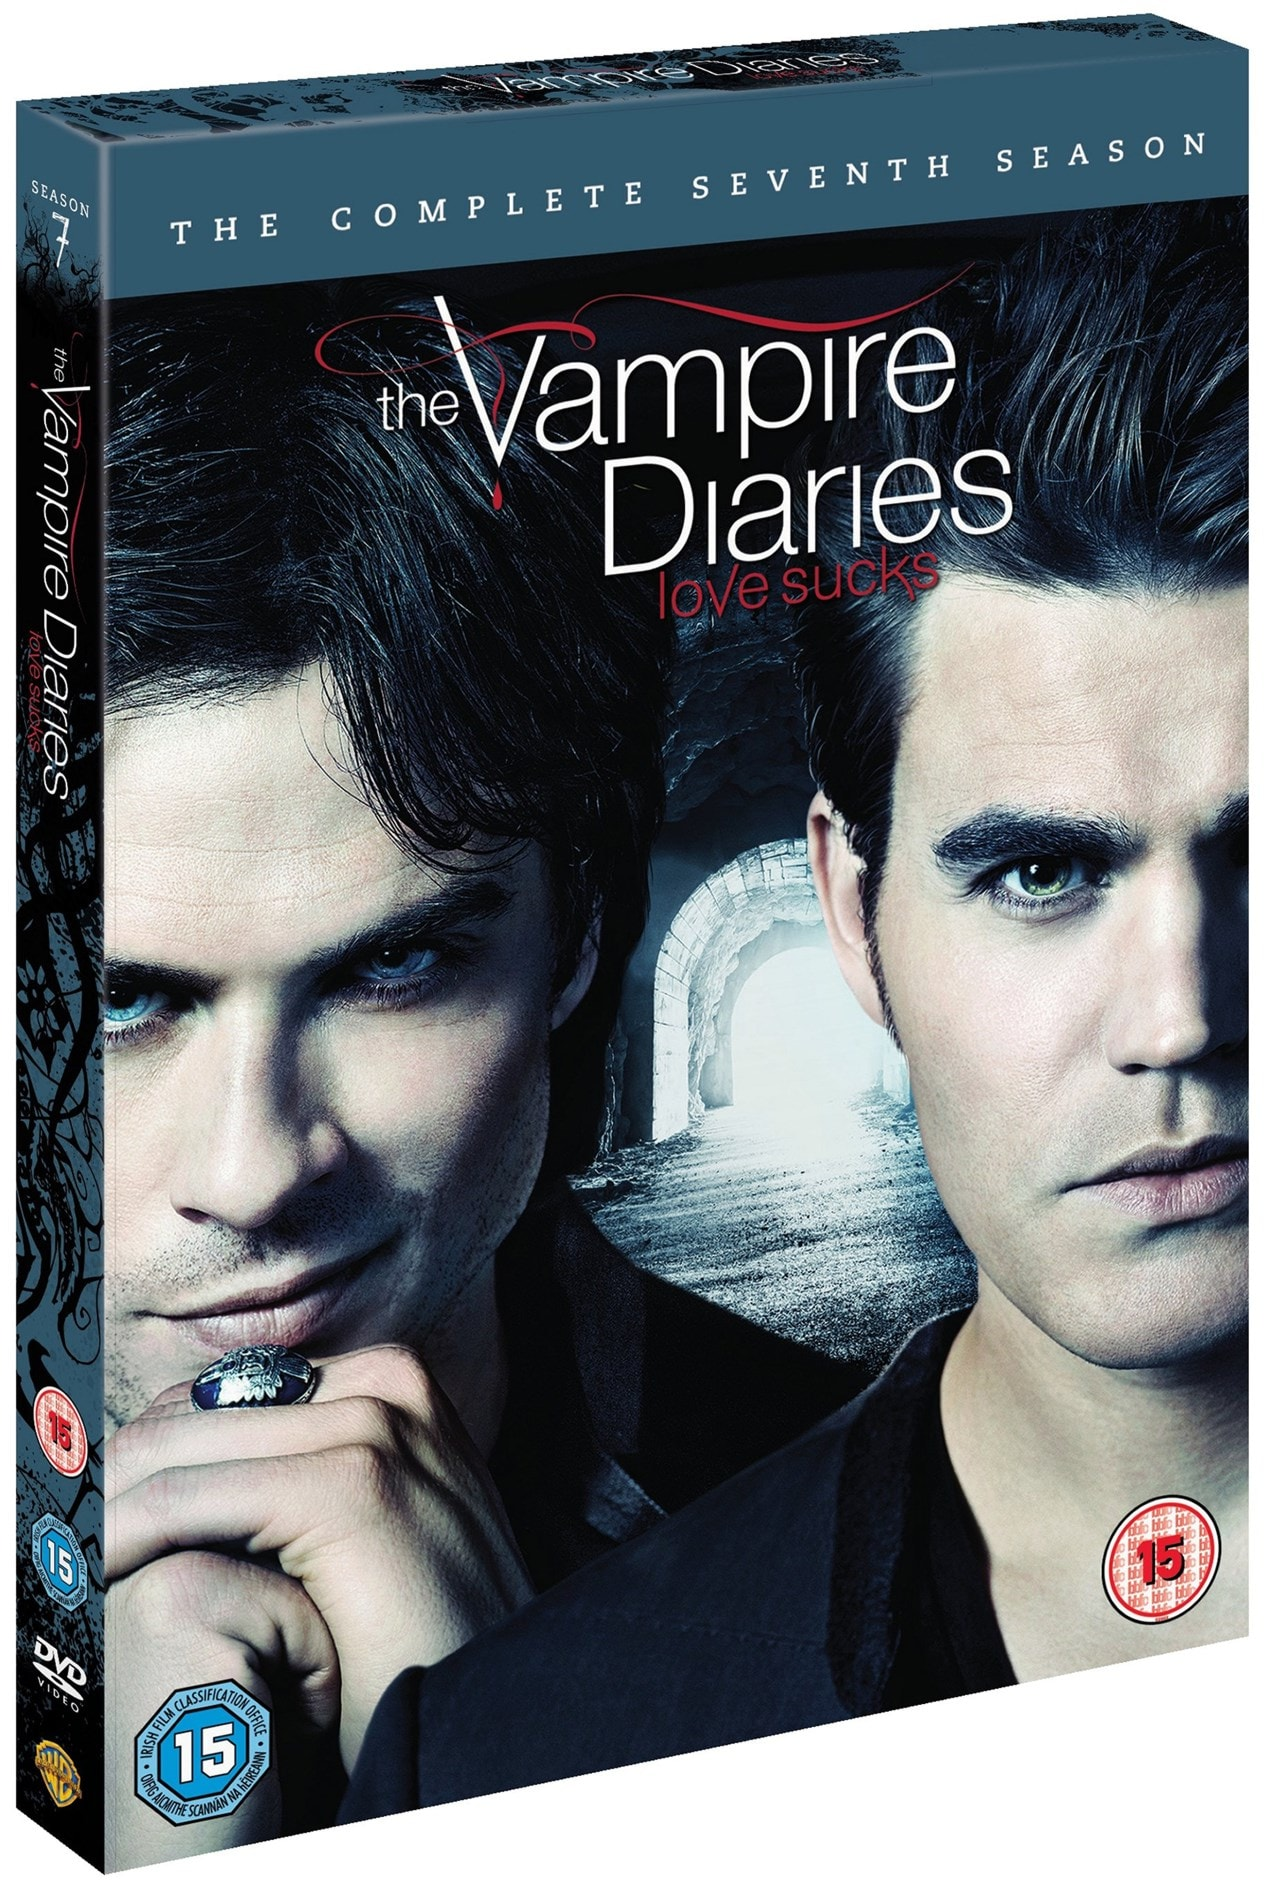 The Vampire Diaries: The Complete Seventh Season - 2